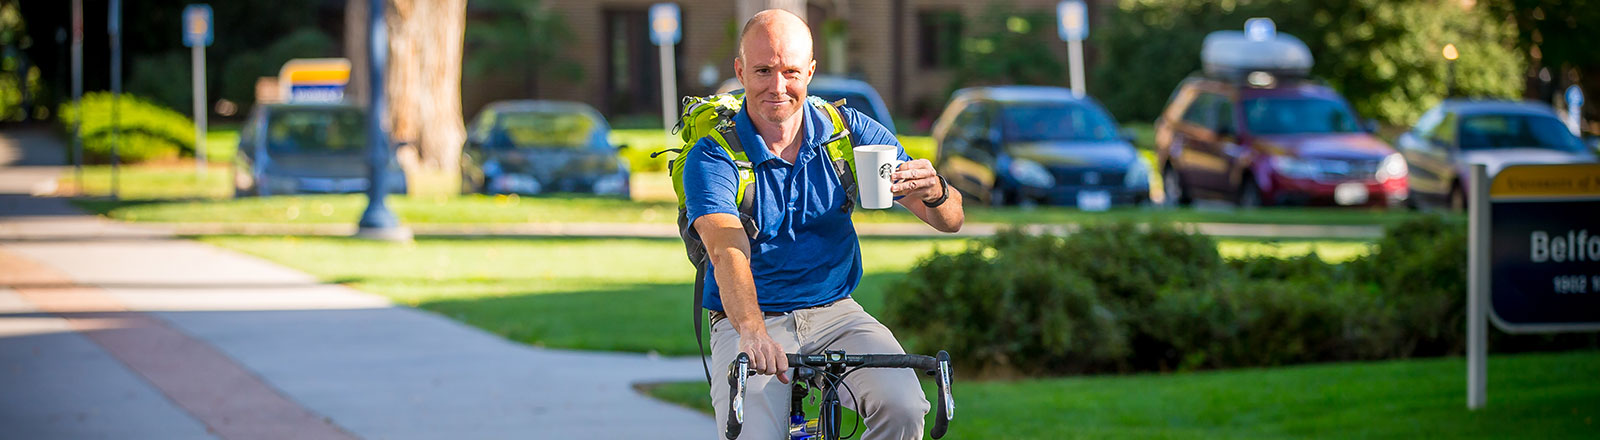 Staff member riding bicycle and drinking coffee